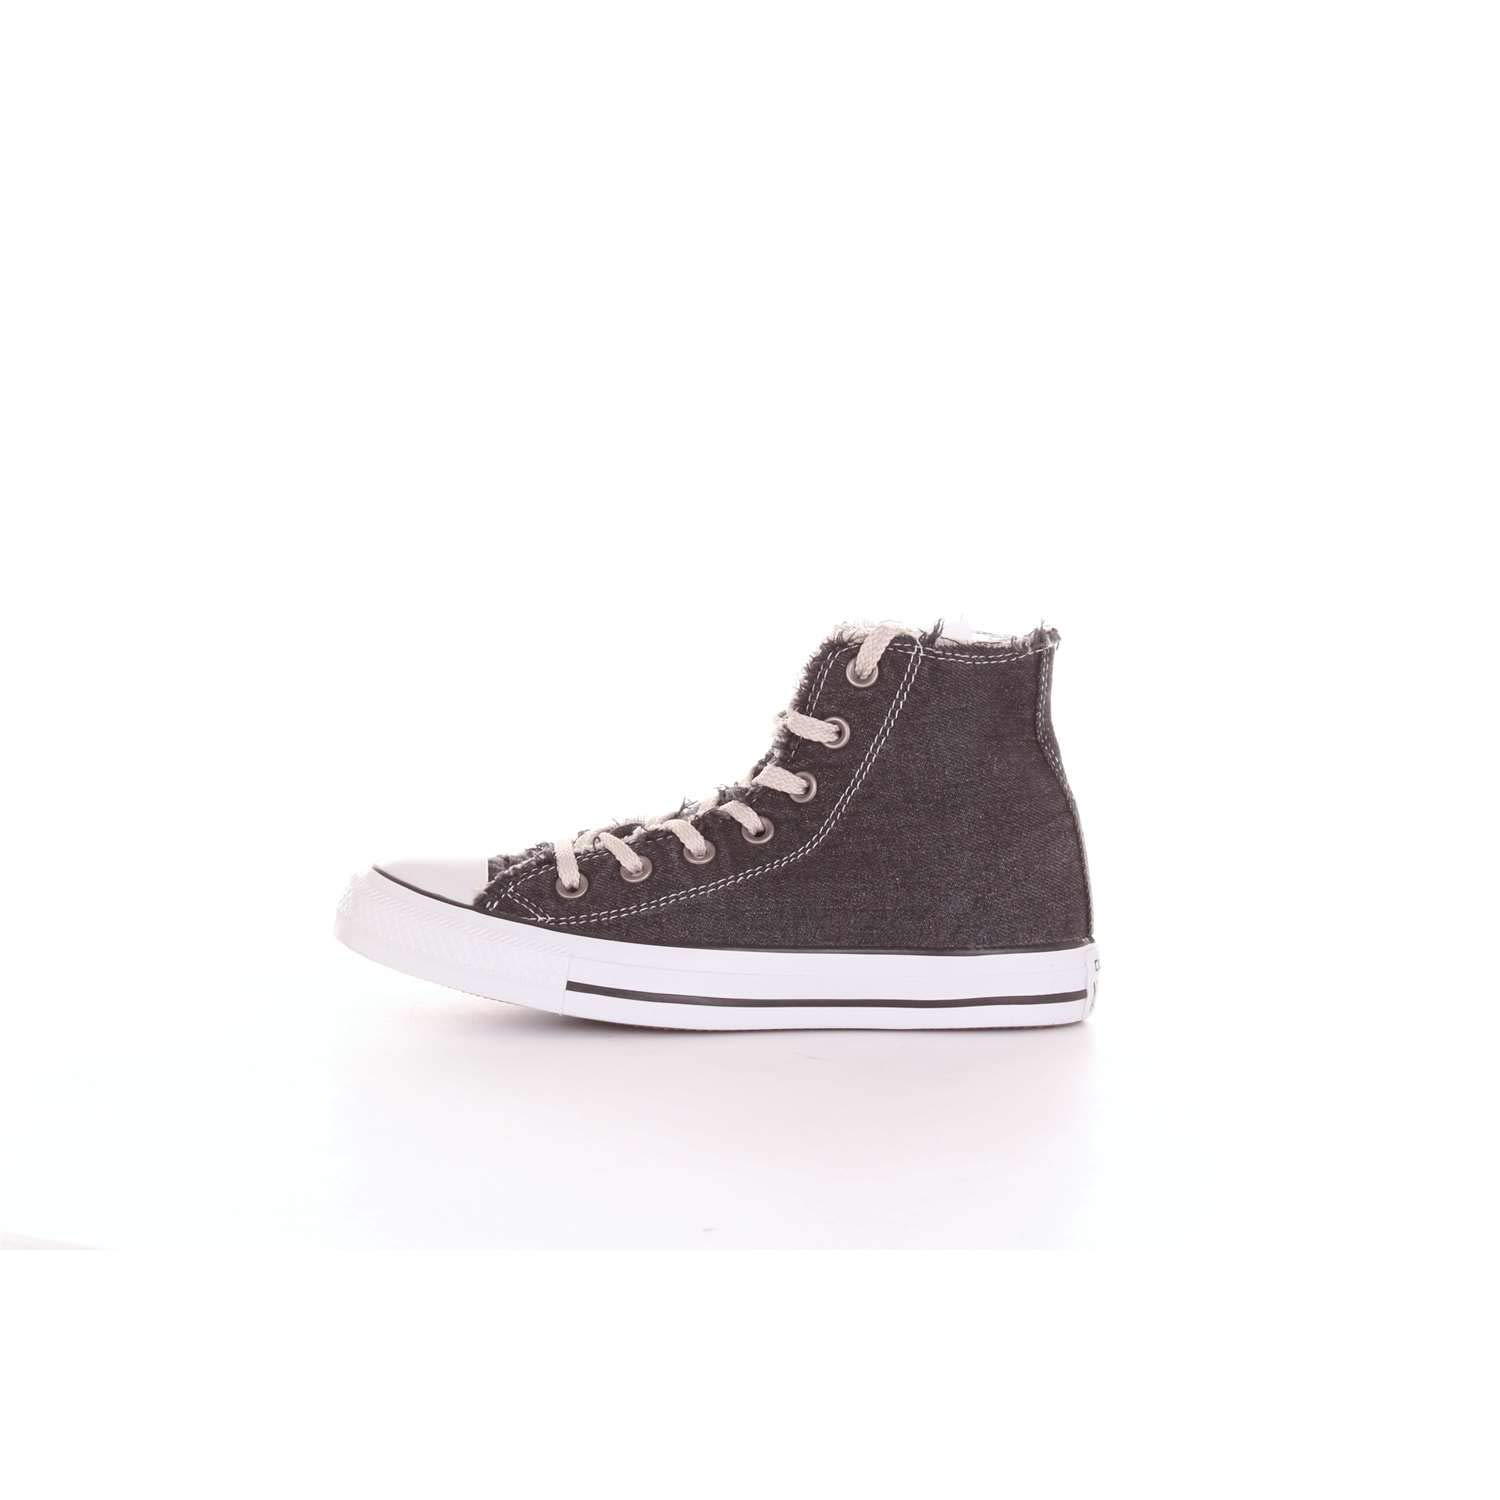 TALLA 3.5. CONVERSE 160941C Sneakers Mujer